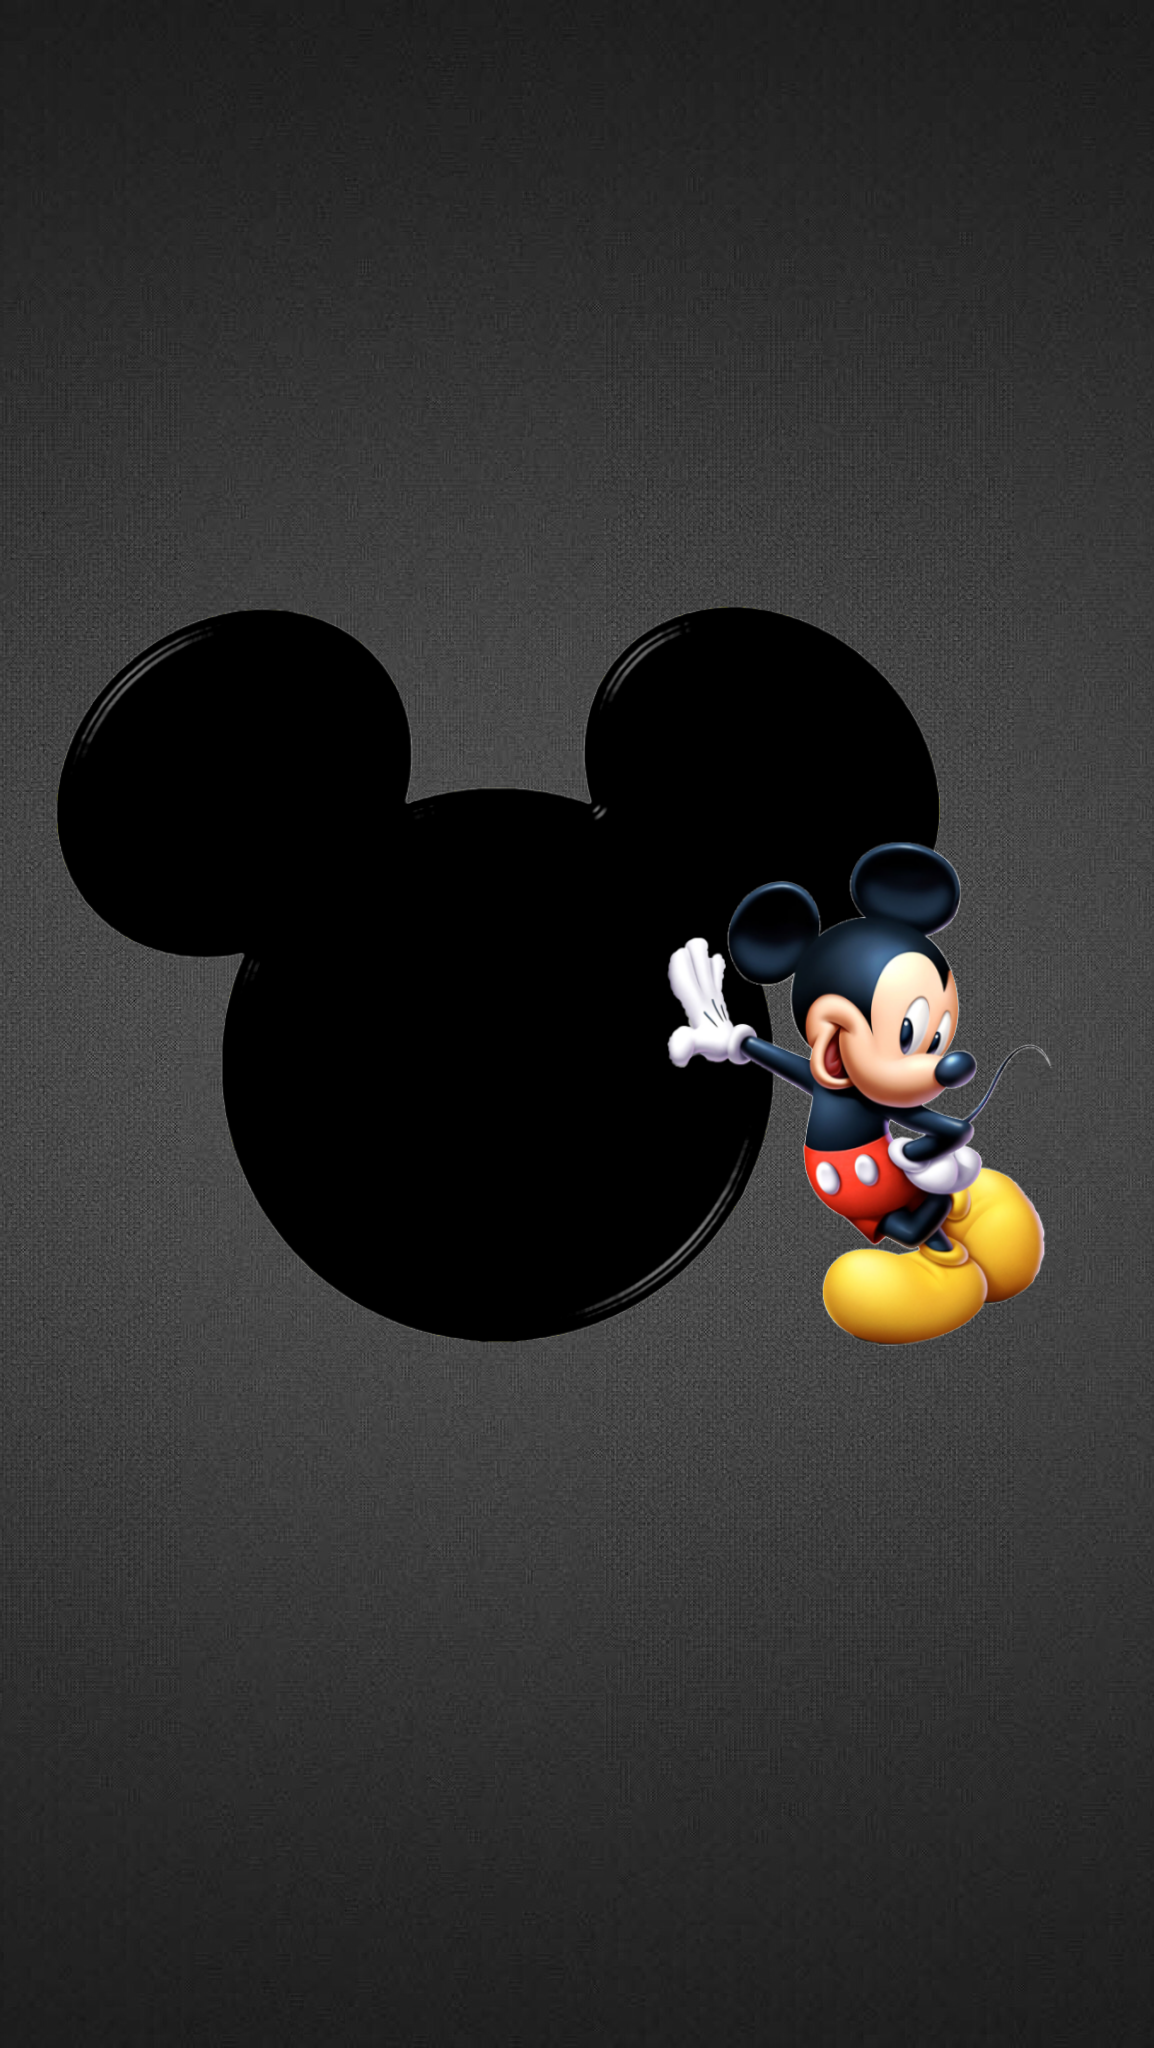 Oboi Iphone Wallpapers Mickey Mouse Disney Character Drawings Mickey Mouse Mickey Mouse Wallpaper